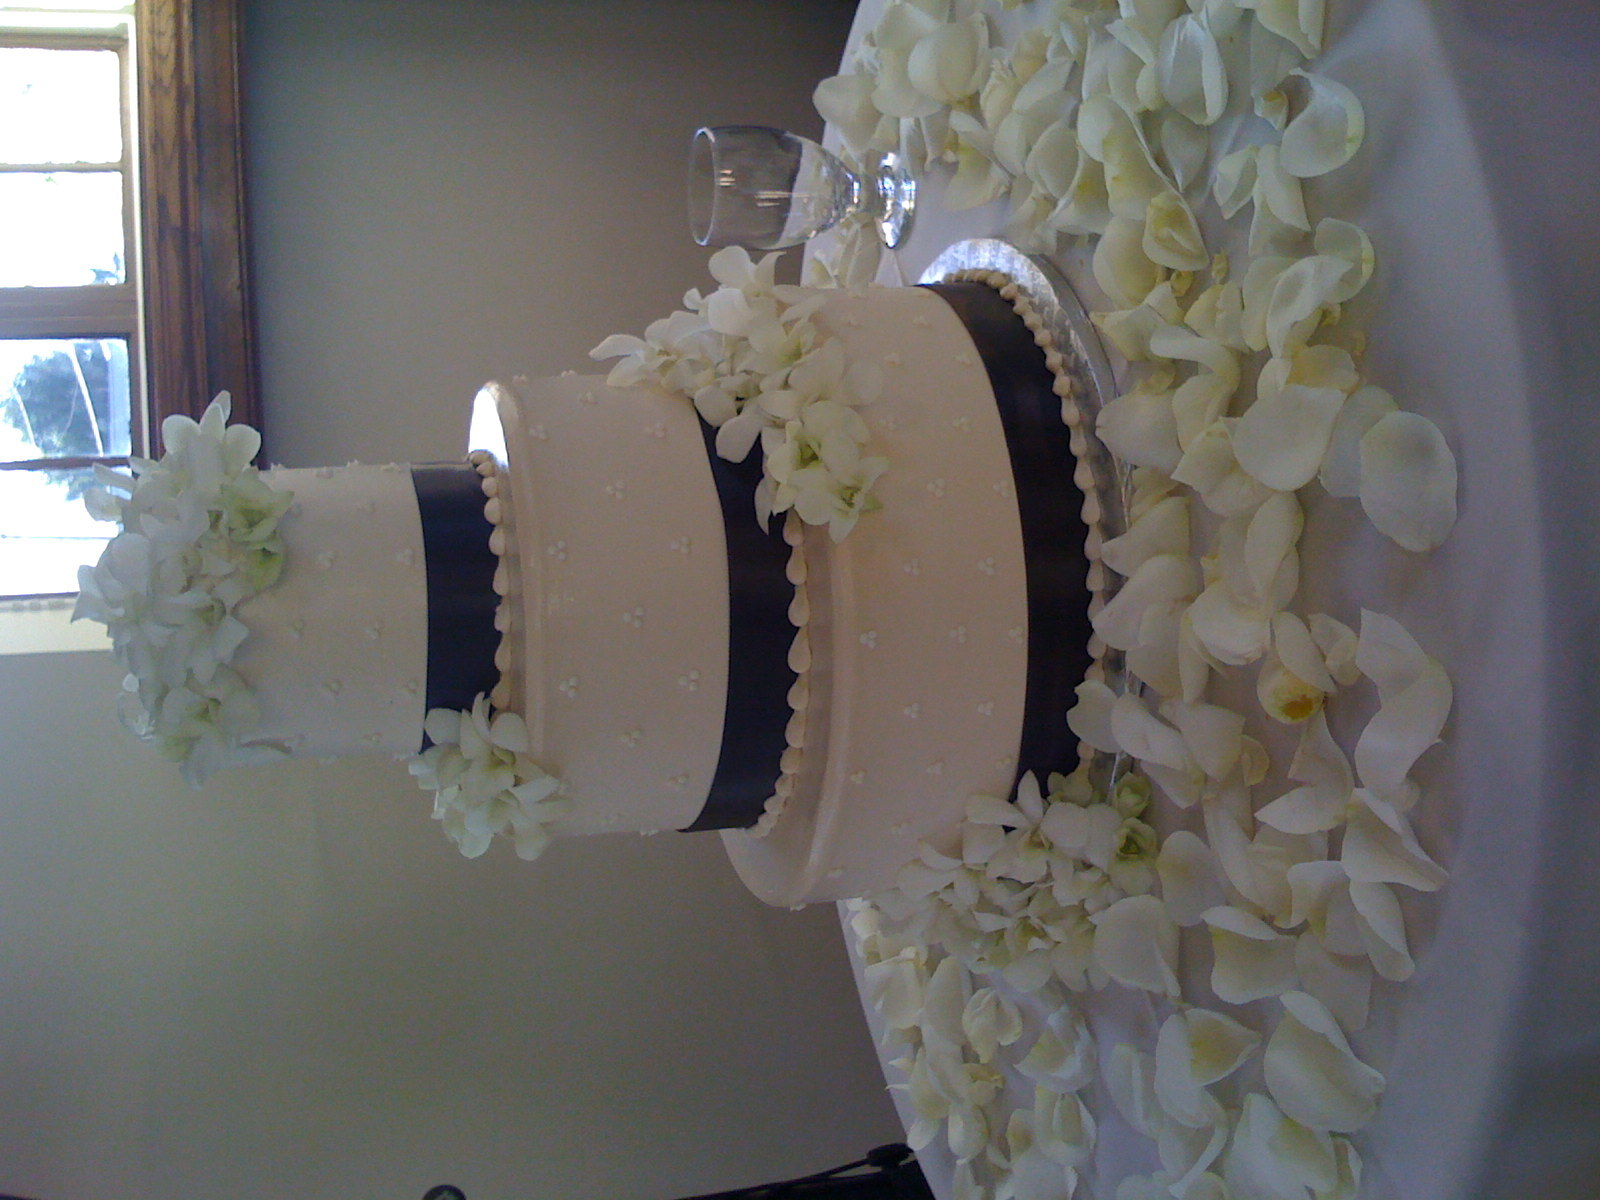 Ceremony, Reception, Flowers & Decor, Cakes, white, cake, Ceremony Flowers, Flowers, Jadore florist